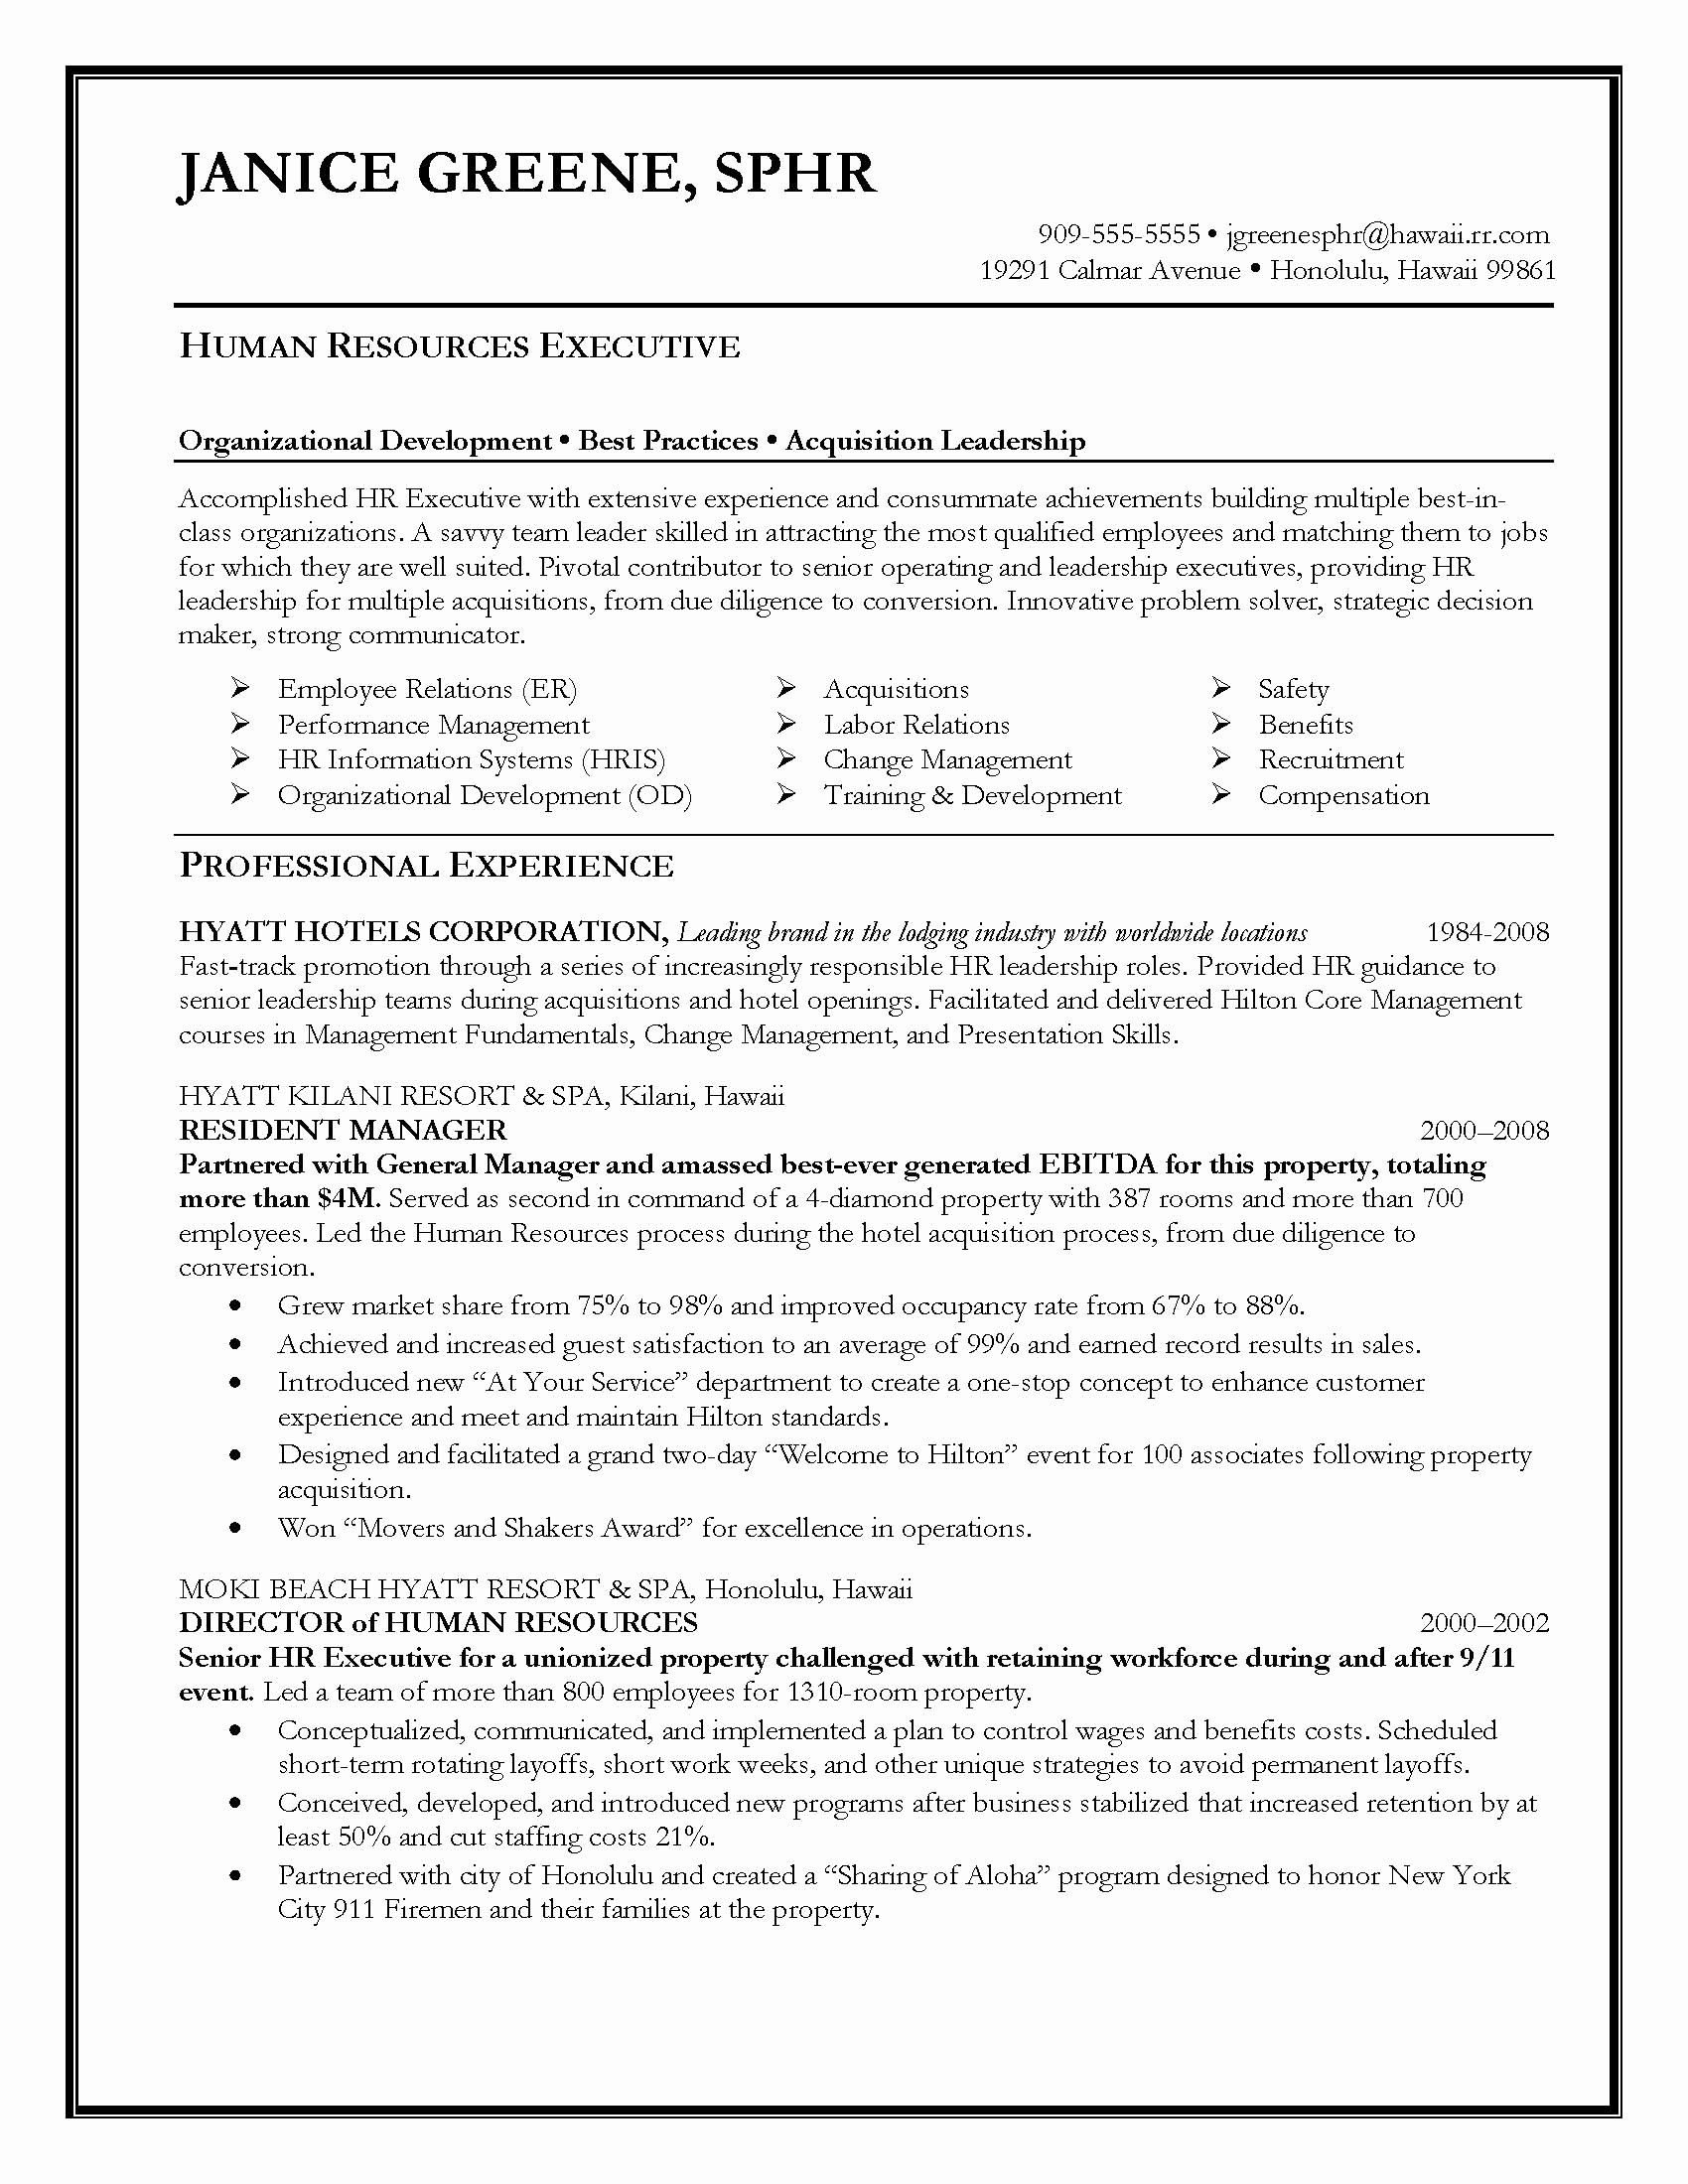 Management Skills Examples for Resume - Leadership Skills Resume New 20 Leadership Skills Examples for